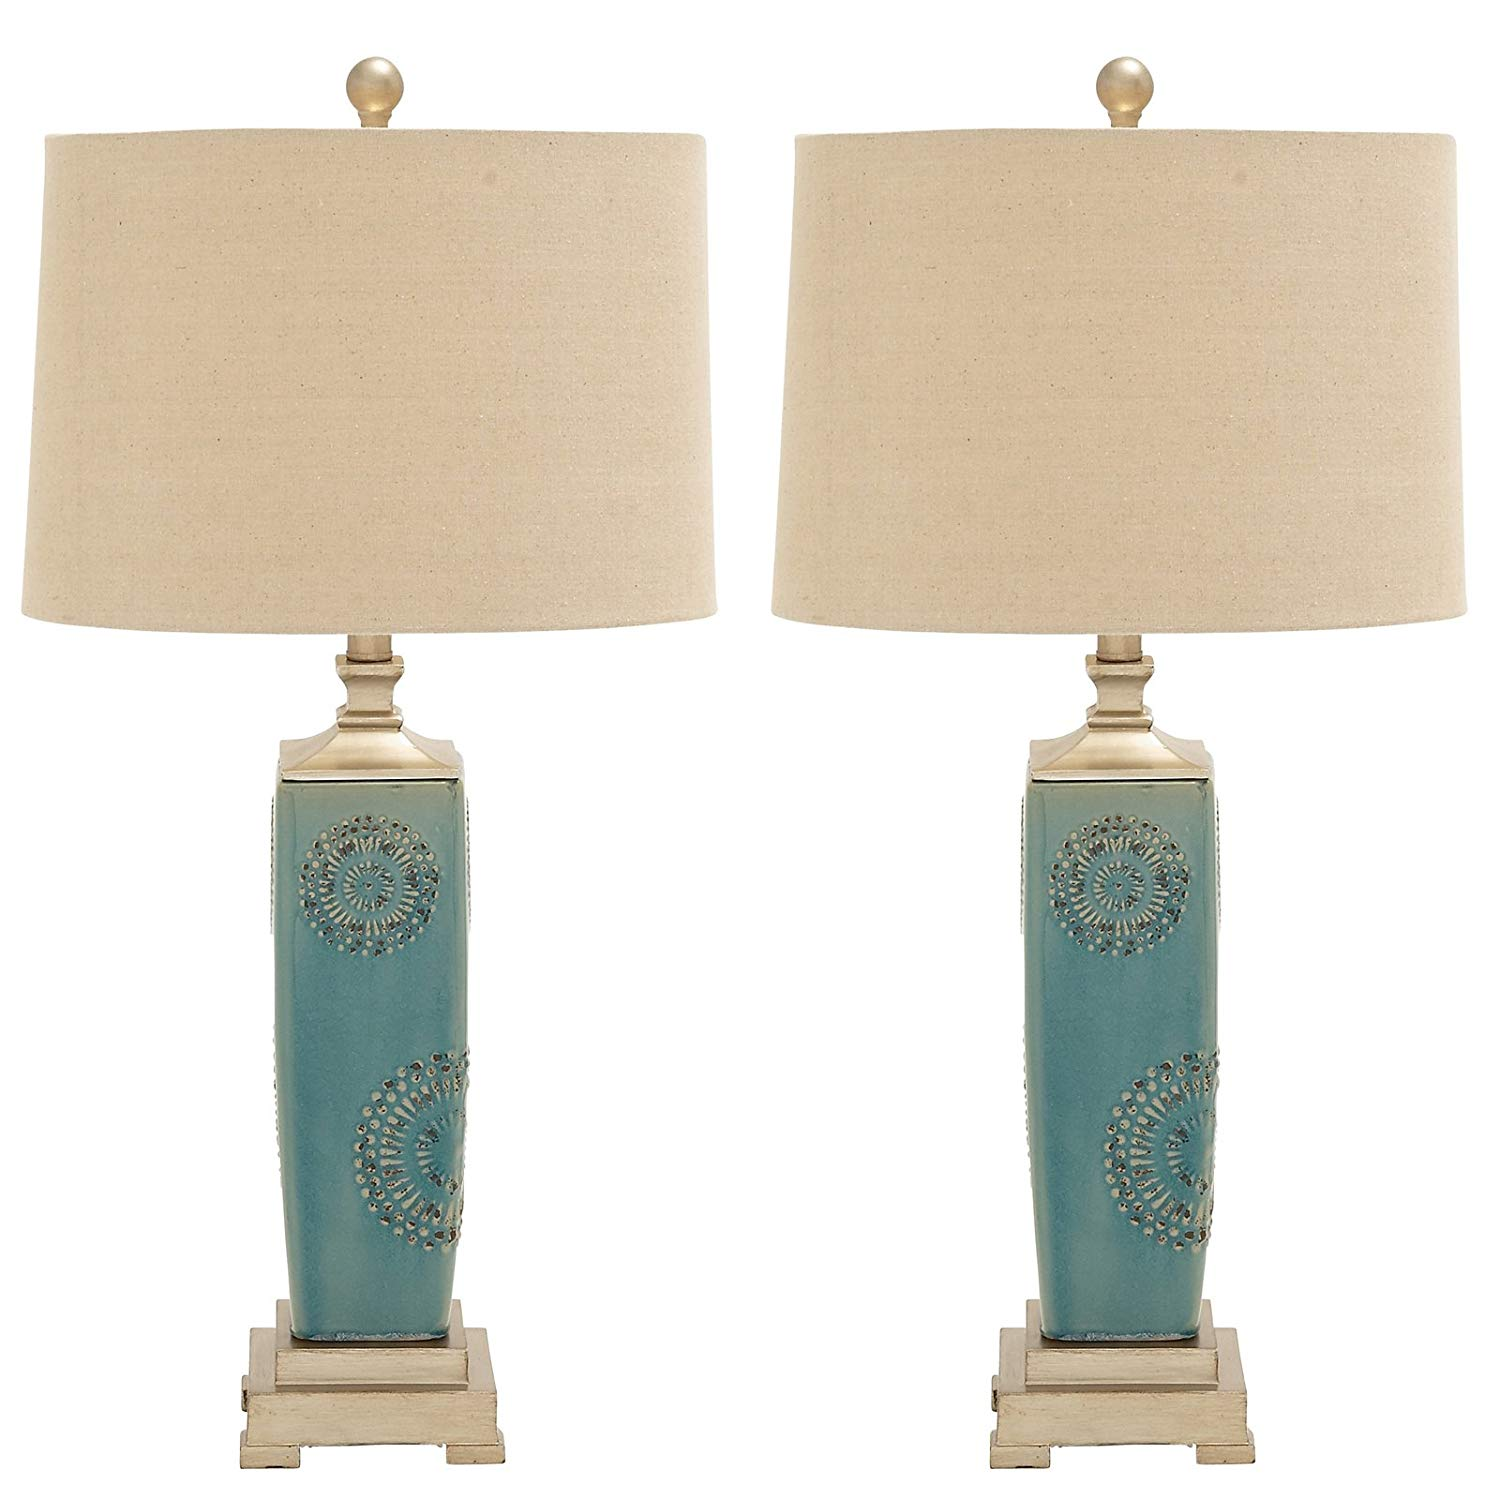 urban designs imported victoria ceramic table lamp set blue accent sky home kitchen pier one wicker chair farmhouse battery powered lanterns tessa furniture inch cabinet plastic